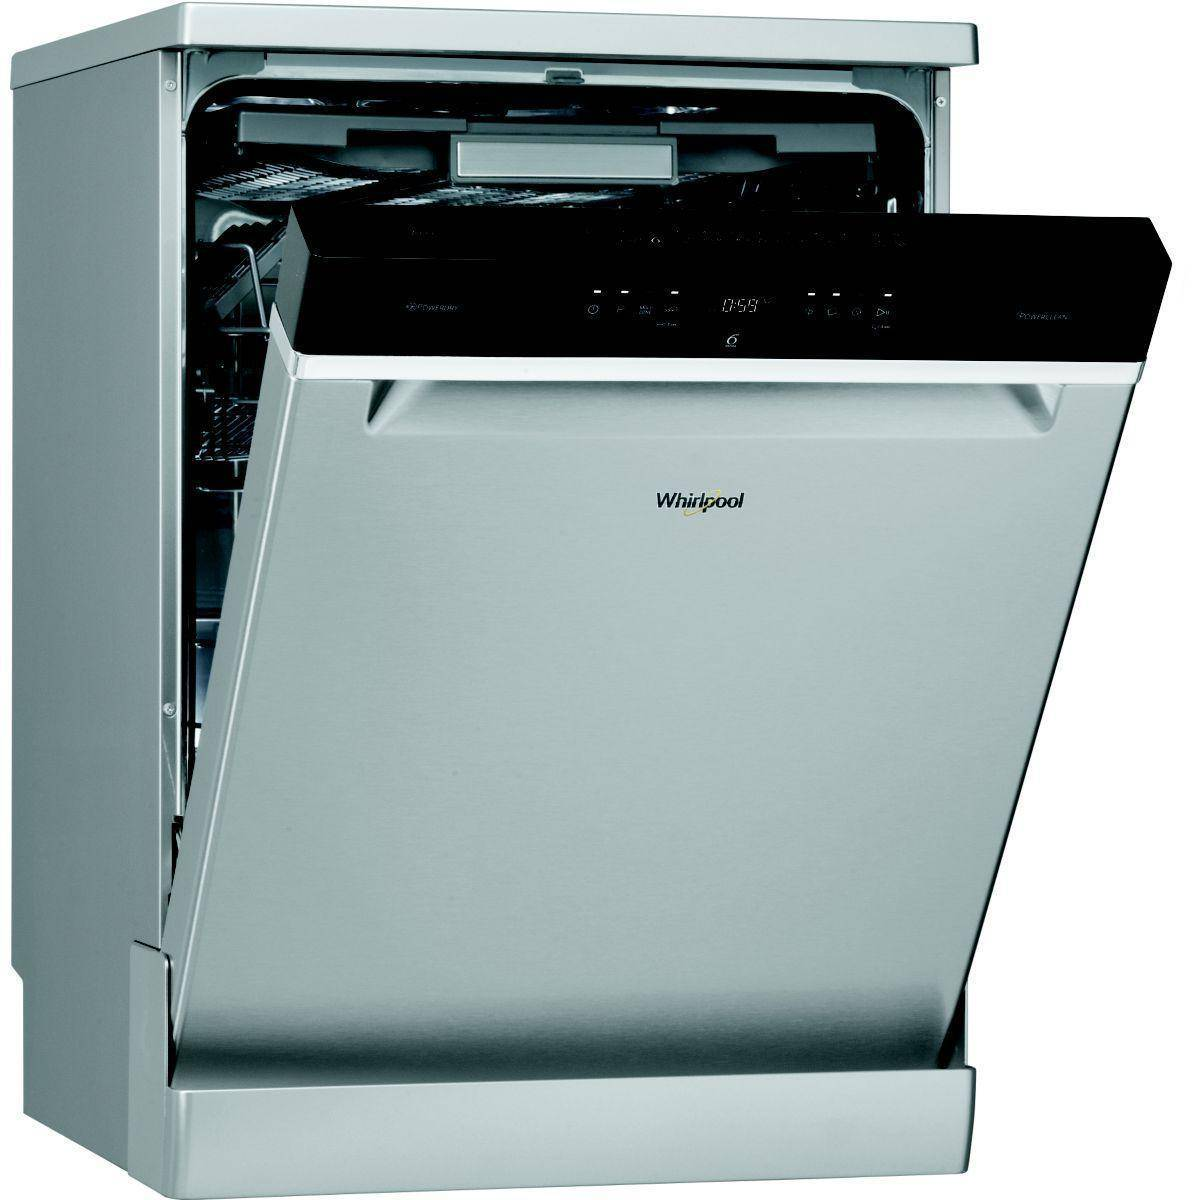 Whirlpool Lave-vaisselle 60 cm WHIRLPOOL WFO 3033DLX 14 couverts